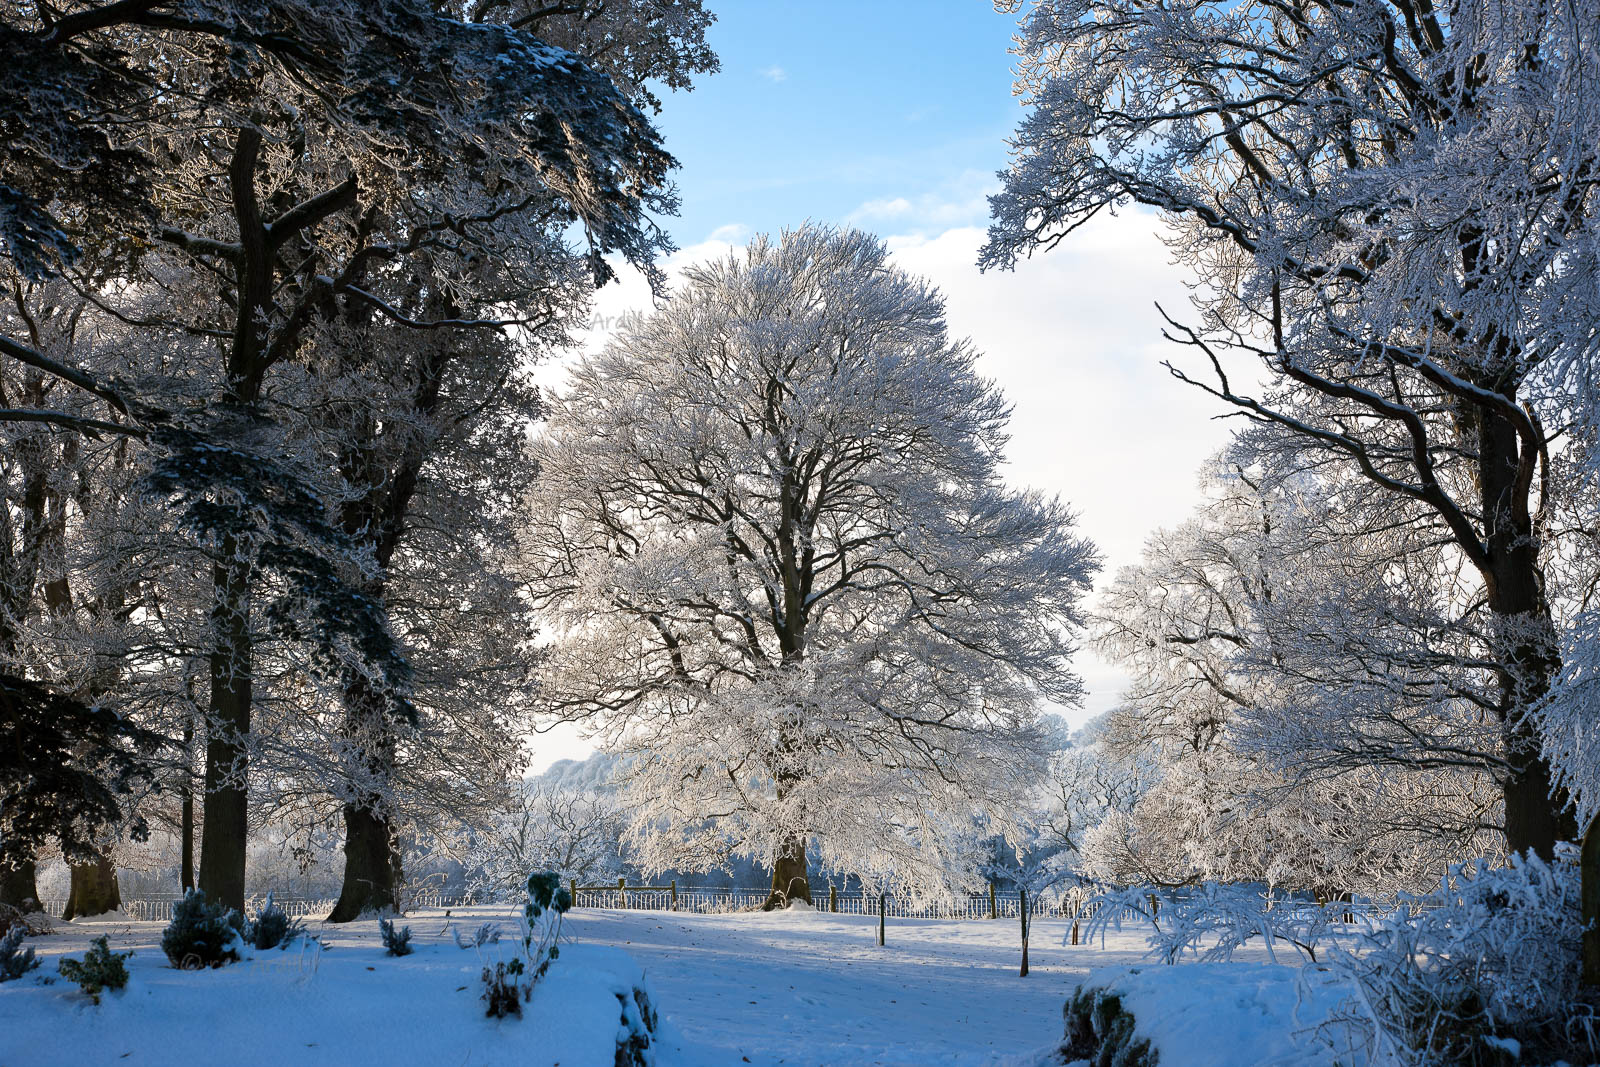 Photo of Meath Dalgan Park in Snow - T13715